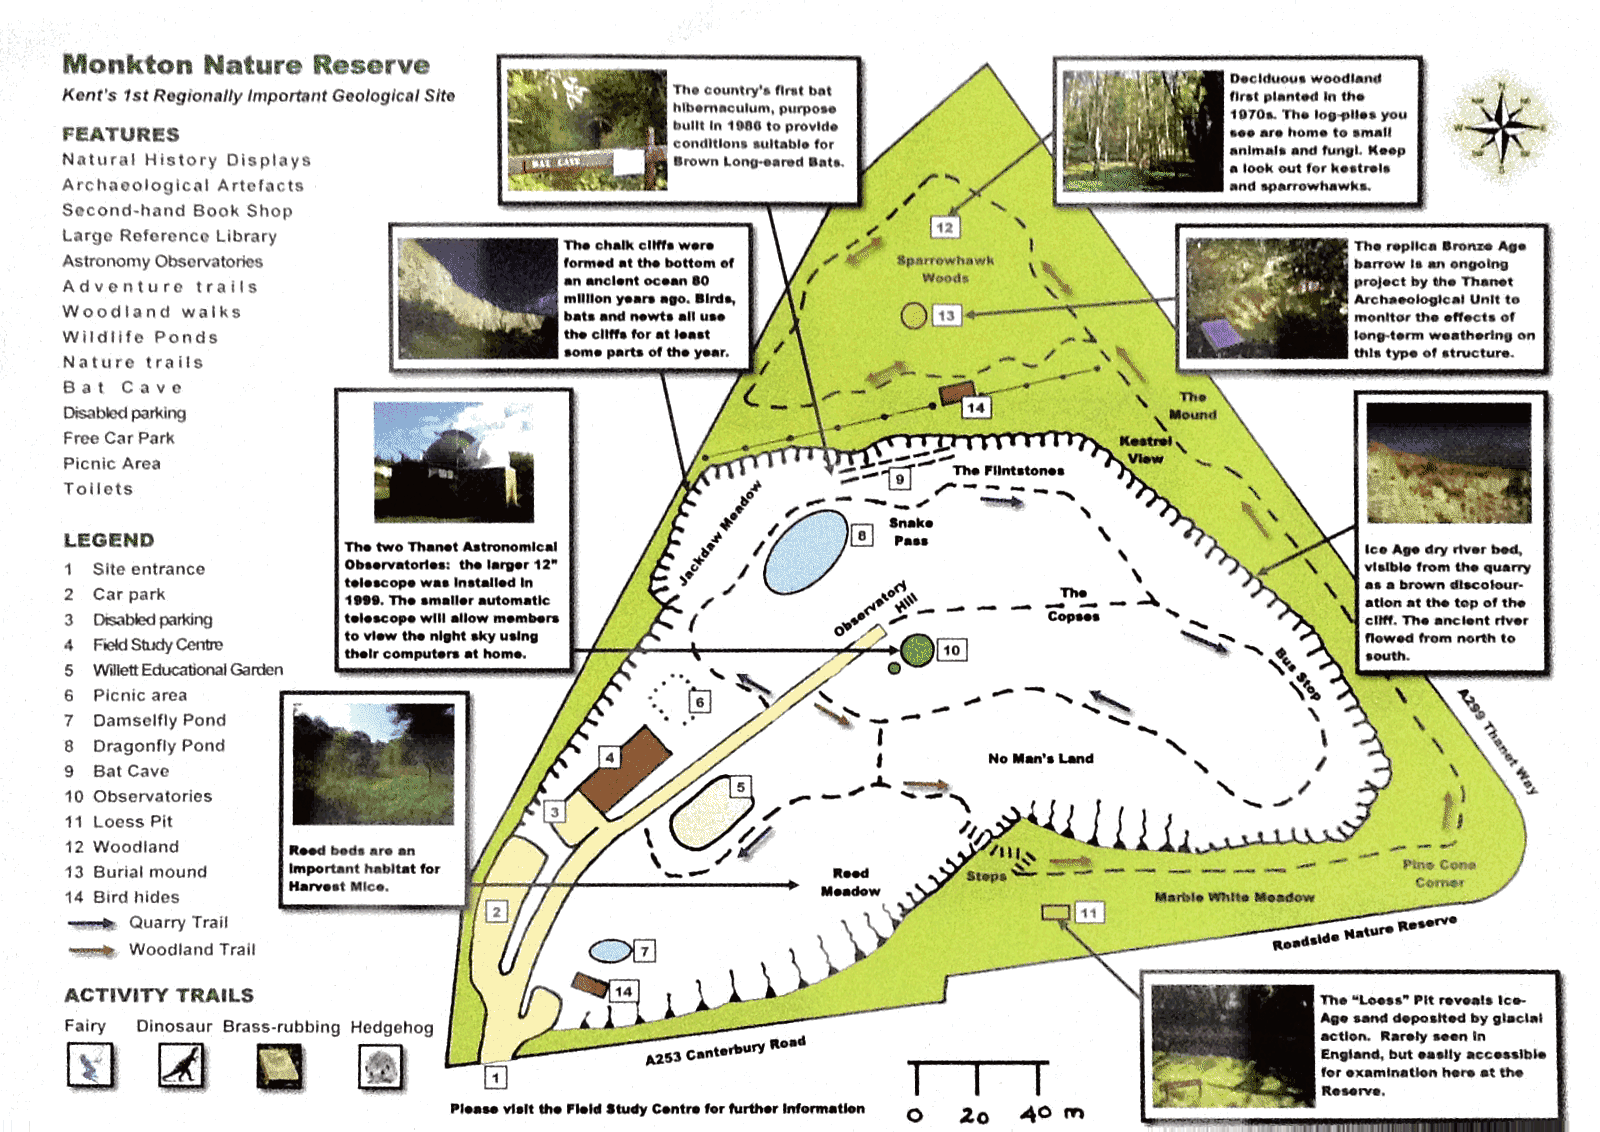 Site map of Monkton Nature Reserve